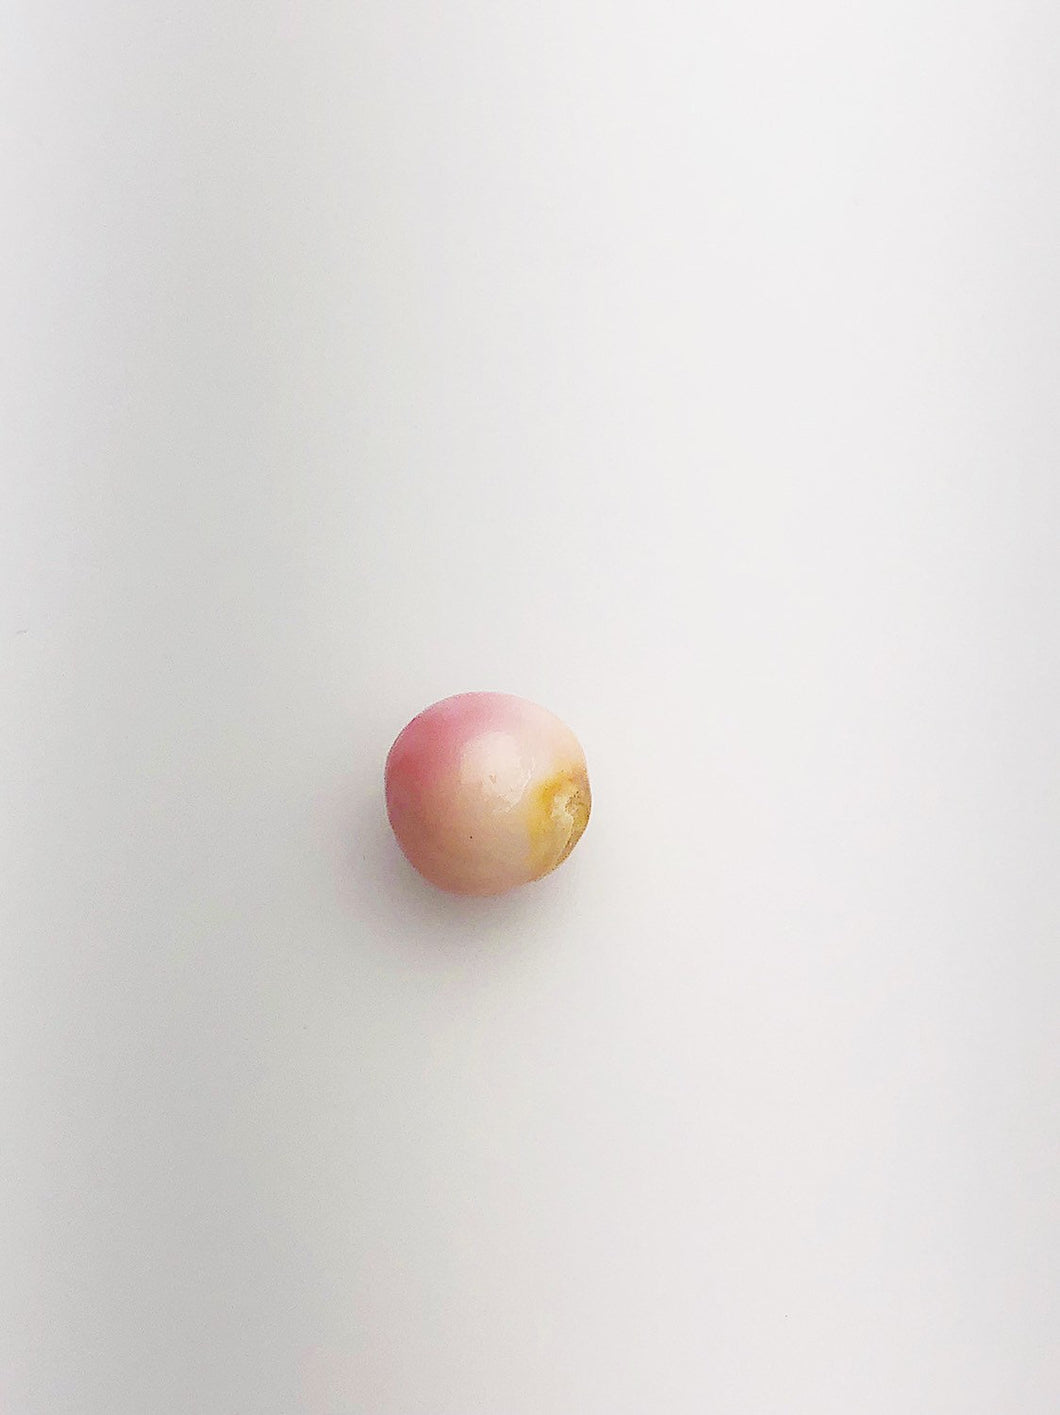 Conch Pearl Loose 9.4mm x 8.0mm No. 8